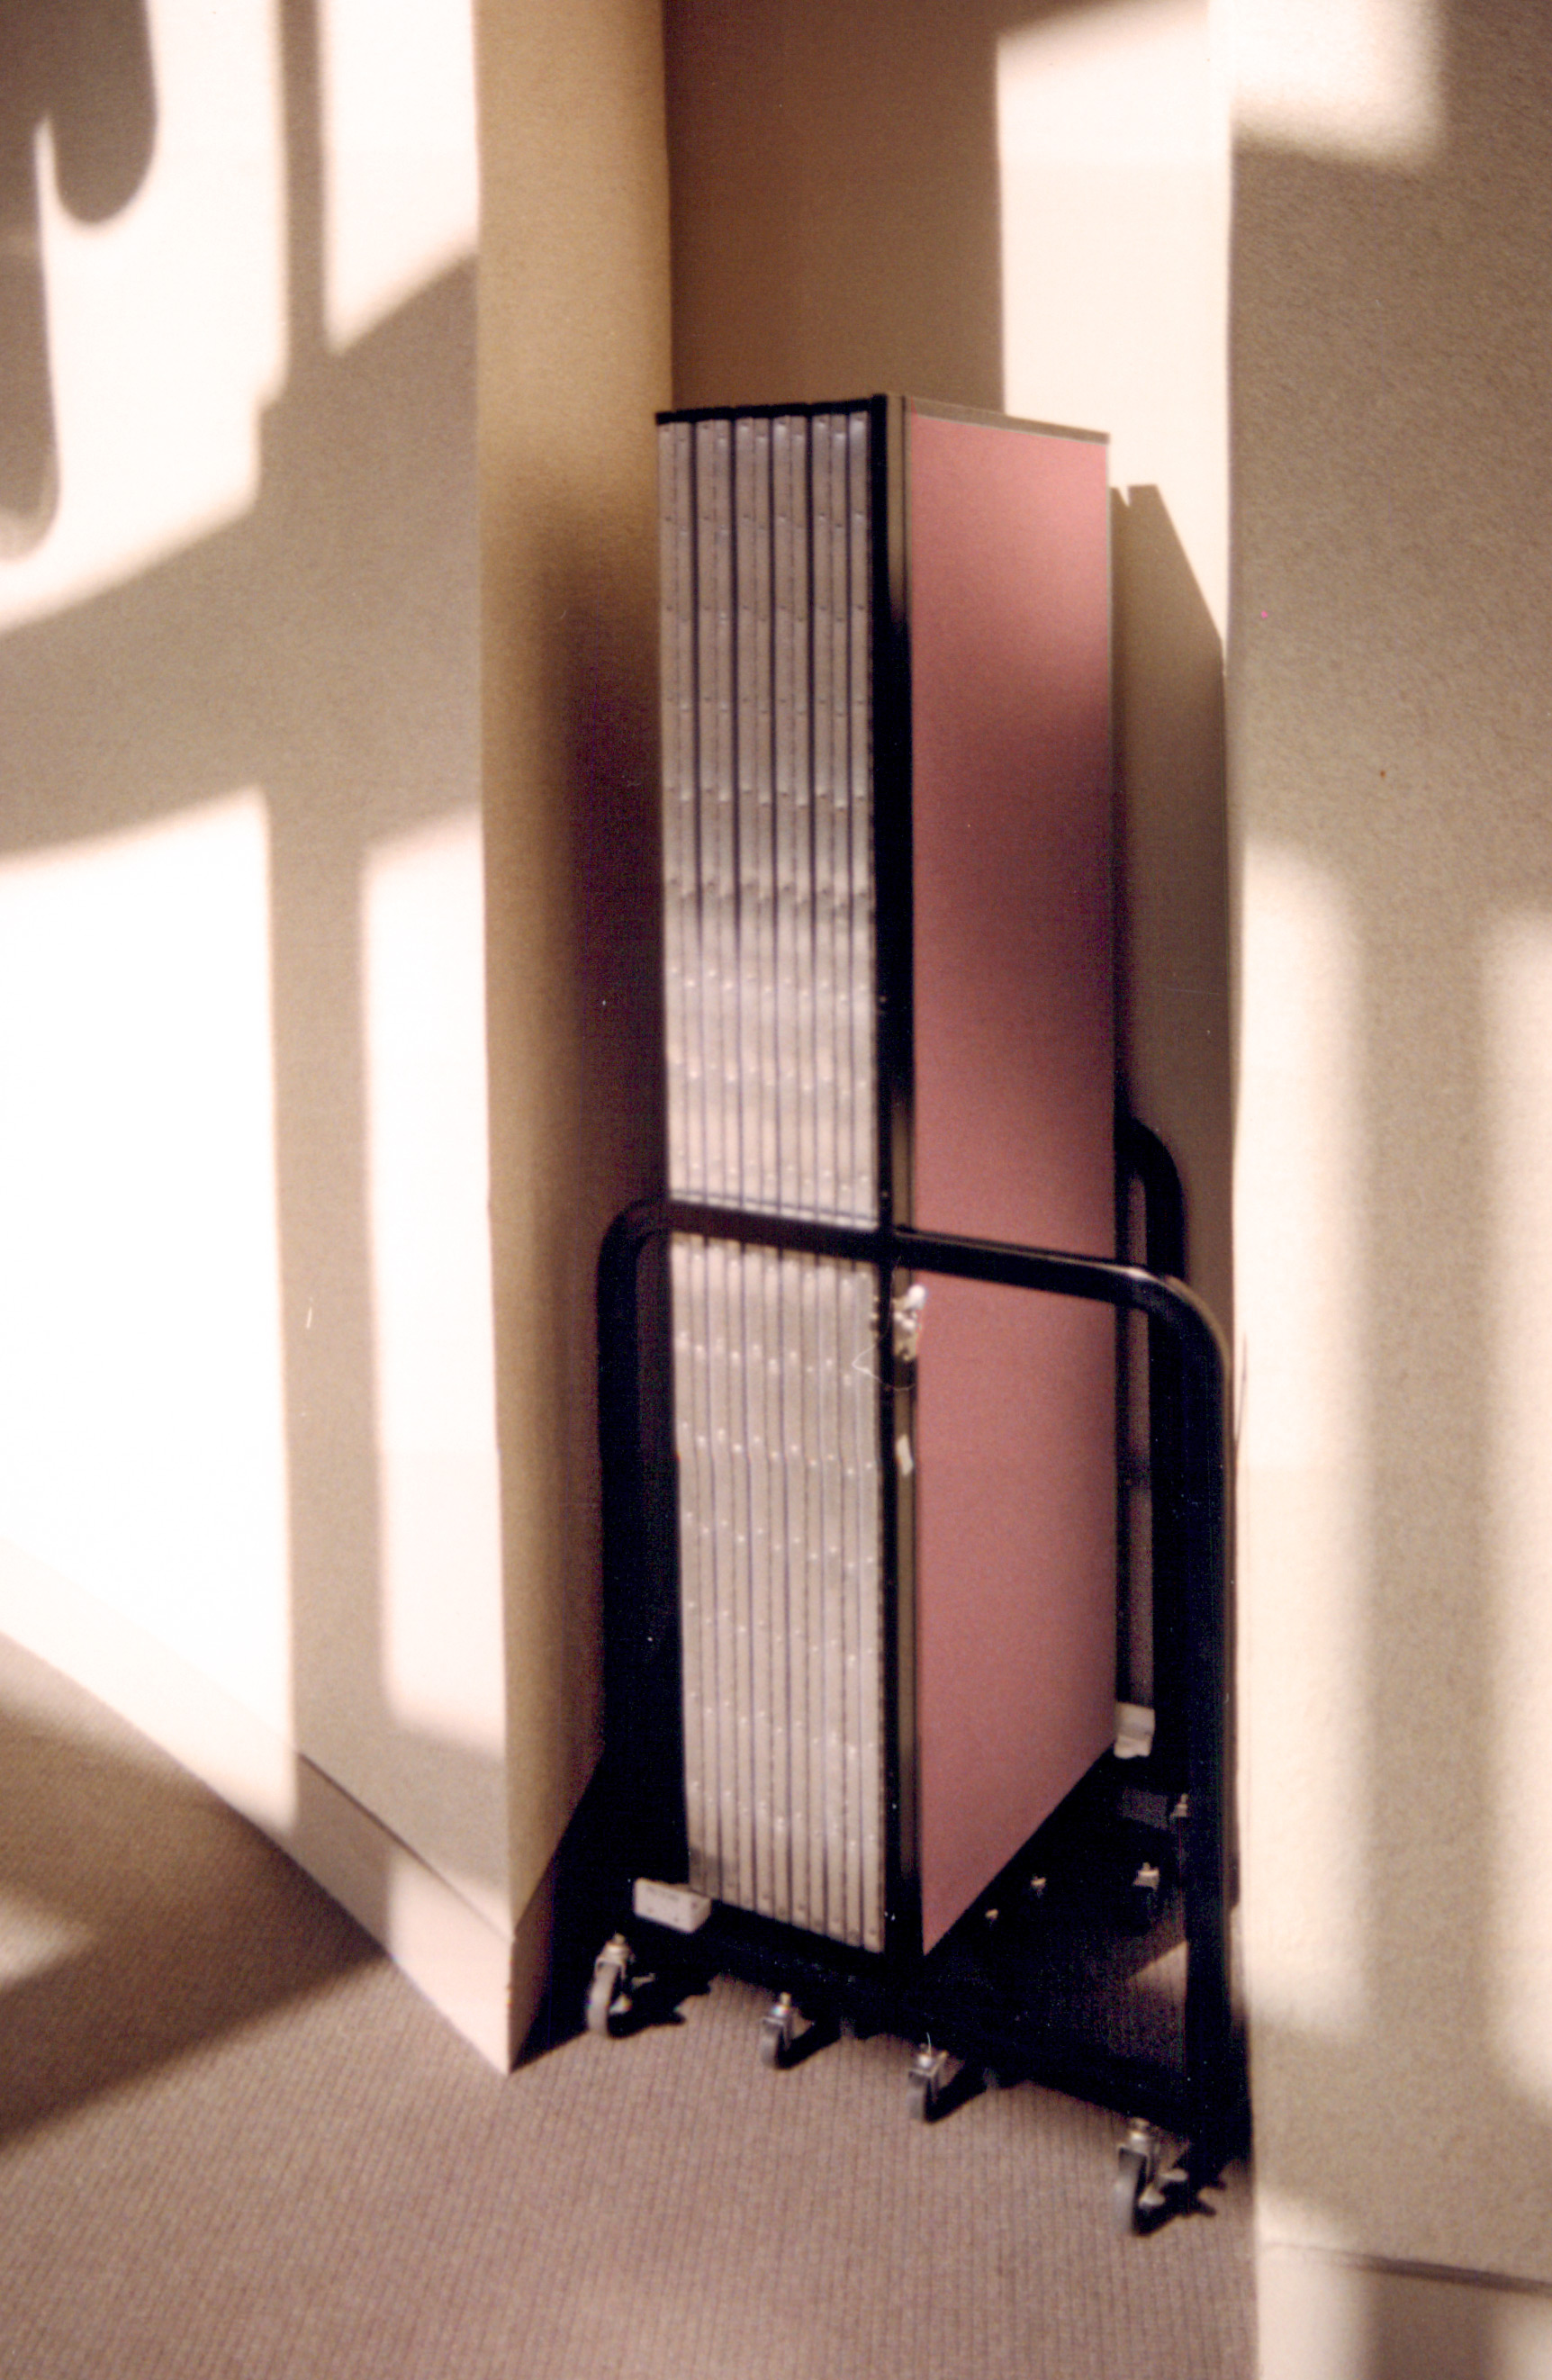 A closed room divider tucked away into a wall nook